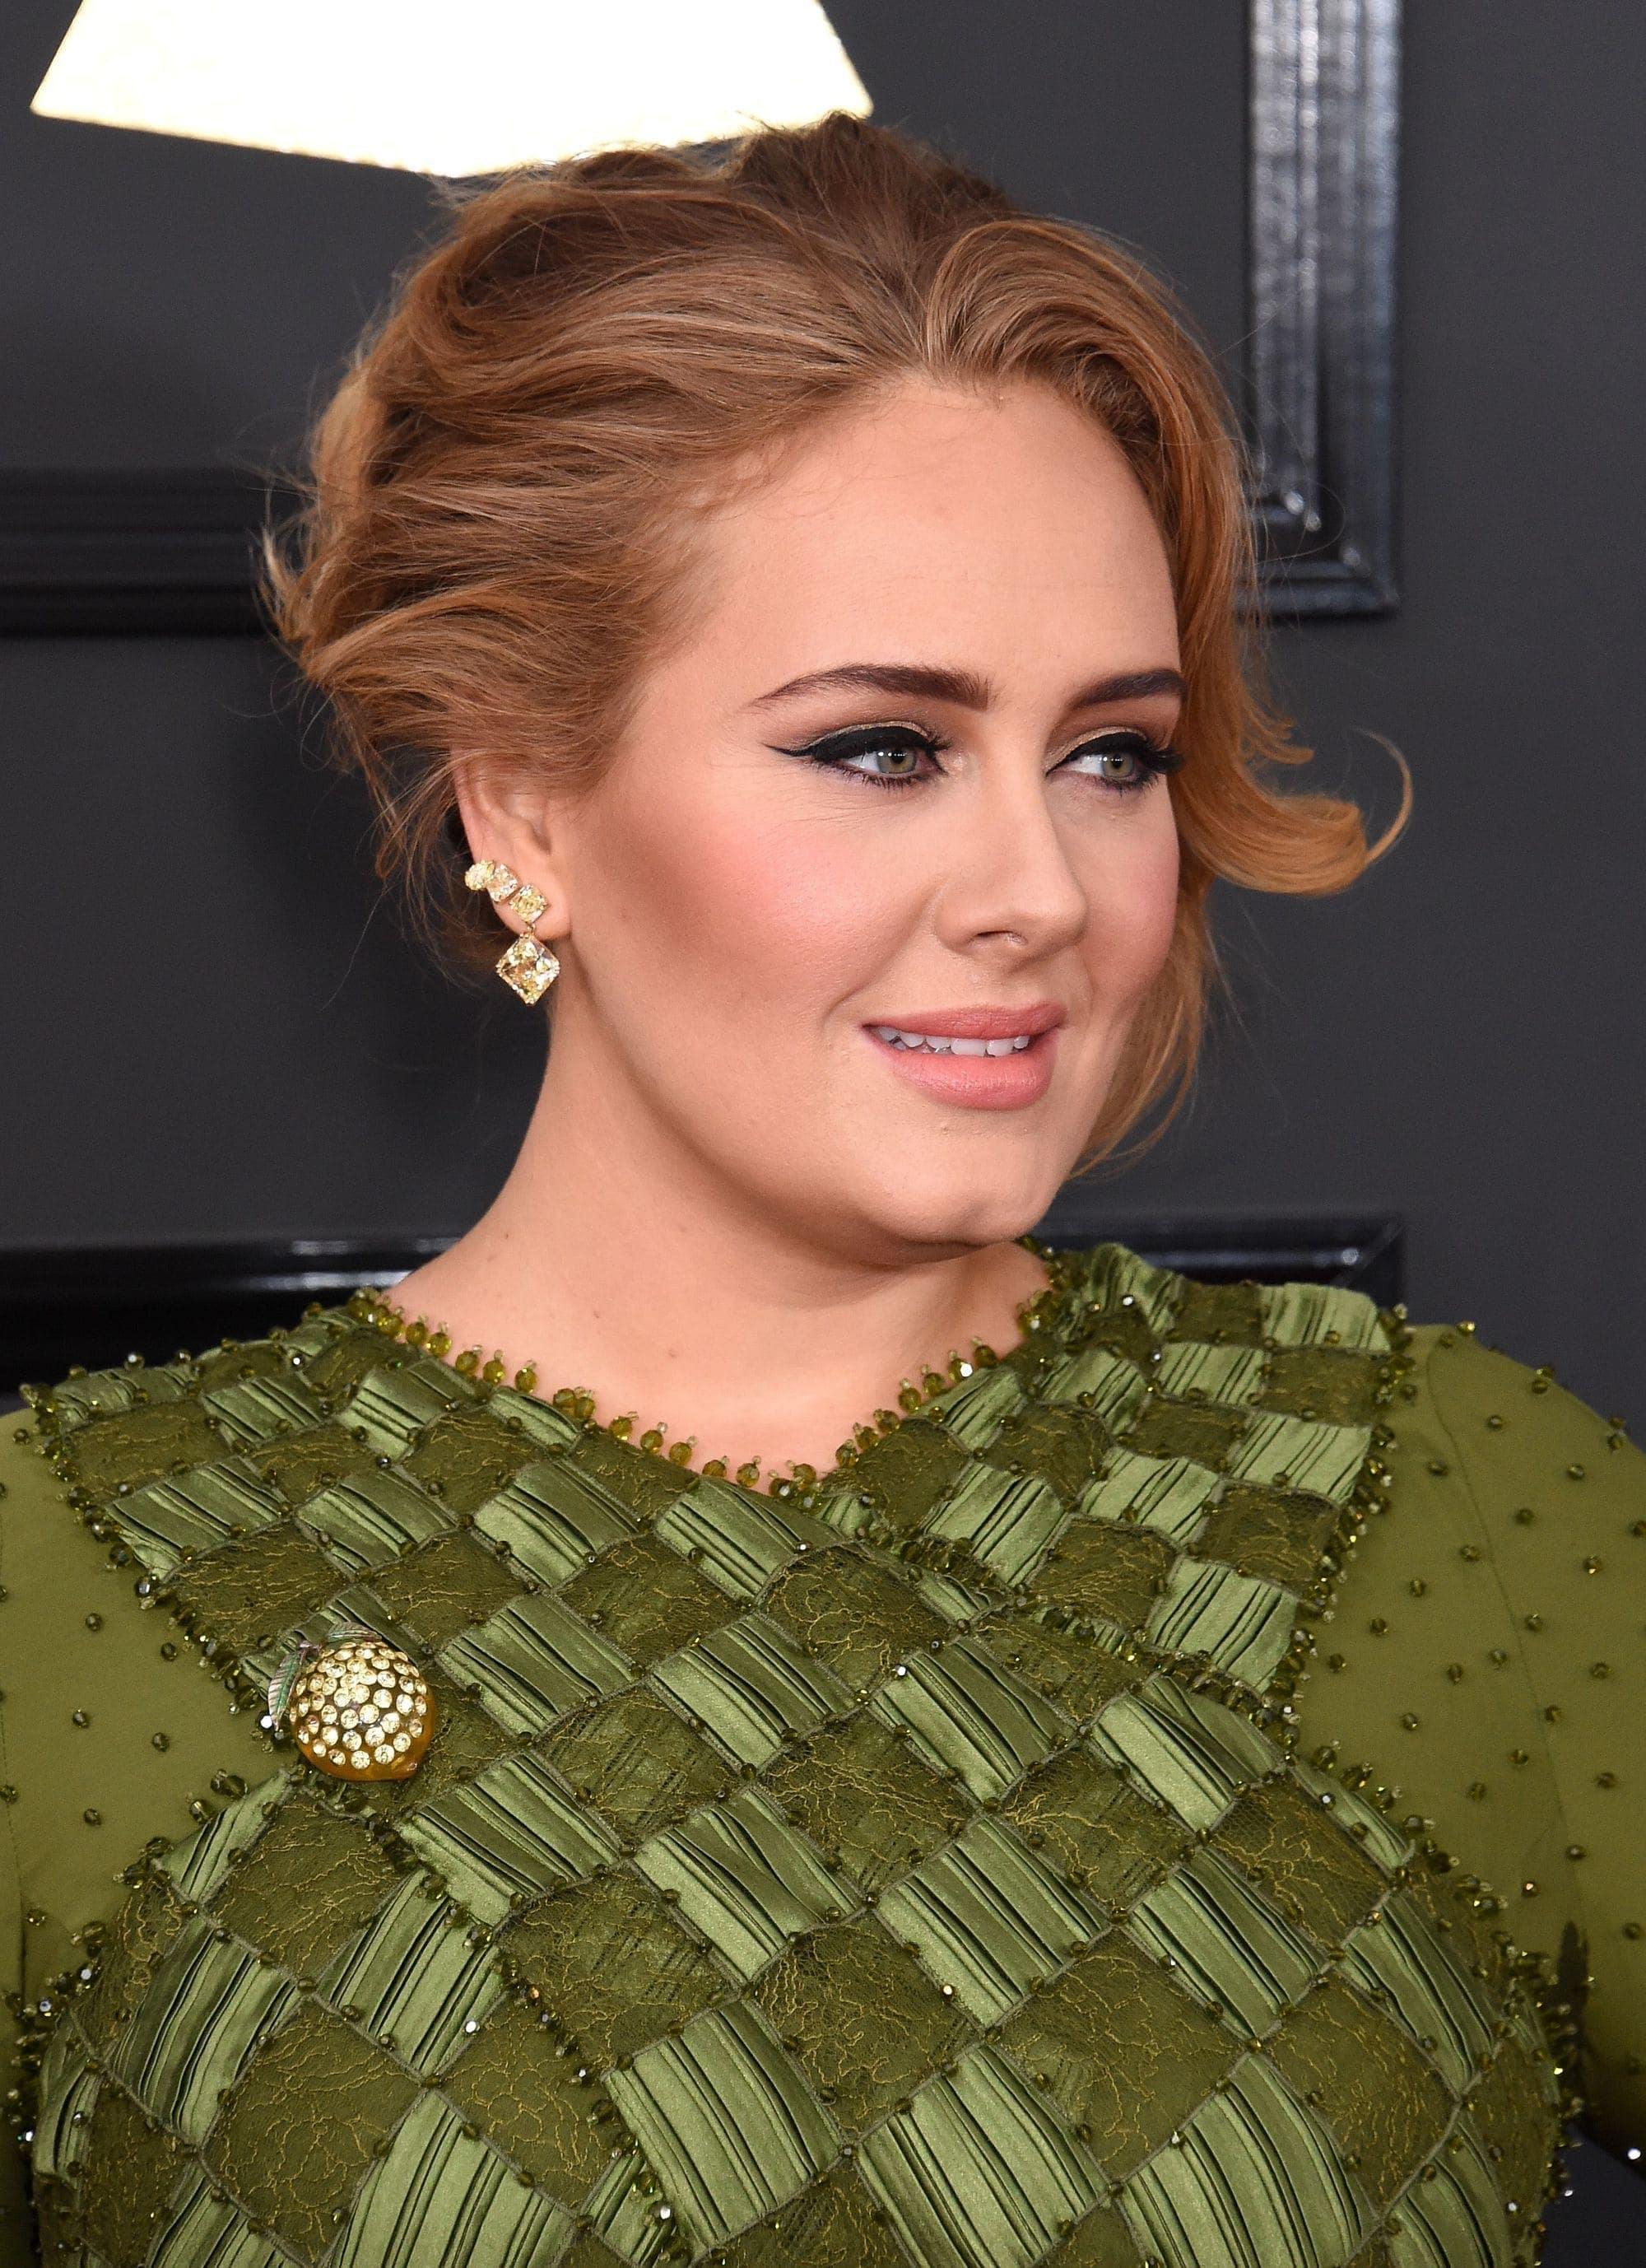 Red carpet hairstyles: Adele with light brown hair styled into a chic updo with loose tendrils